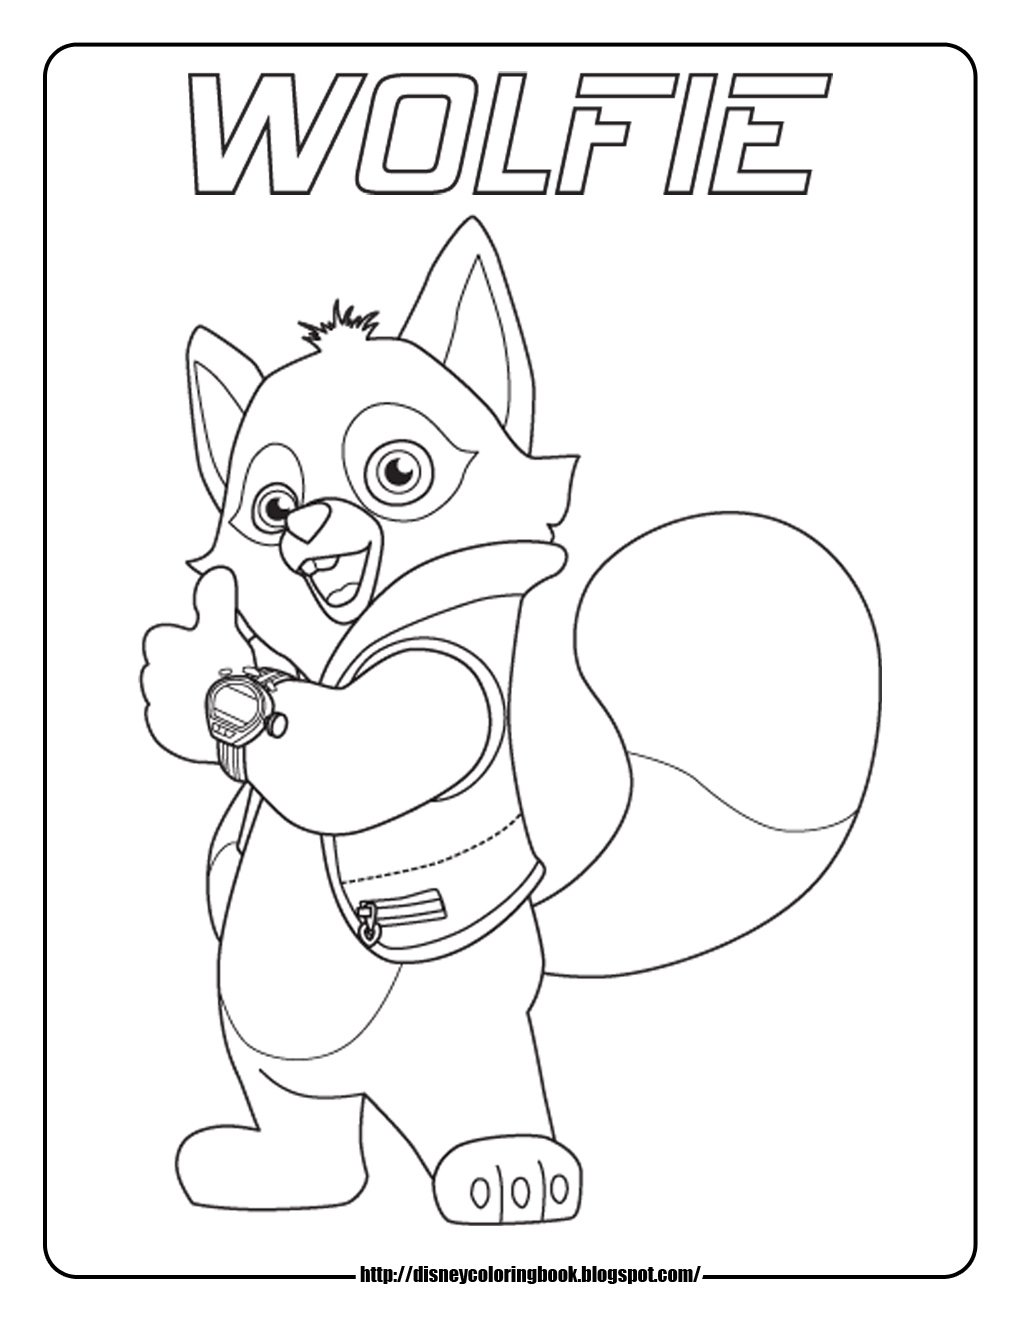 Special Agent Oso 1  Free Disney Coloring Sheets